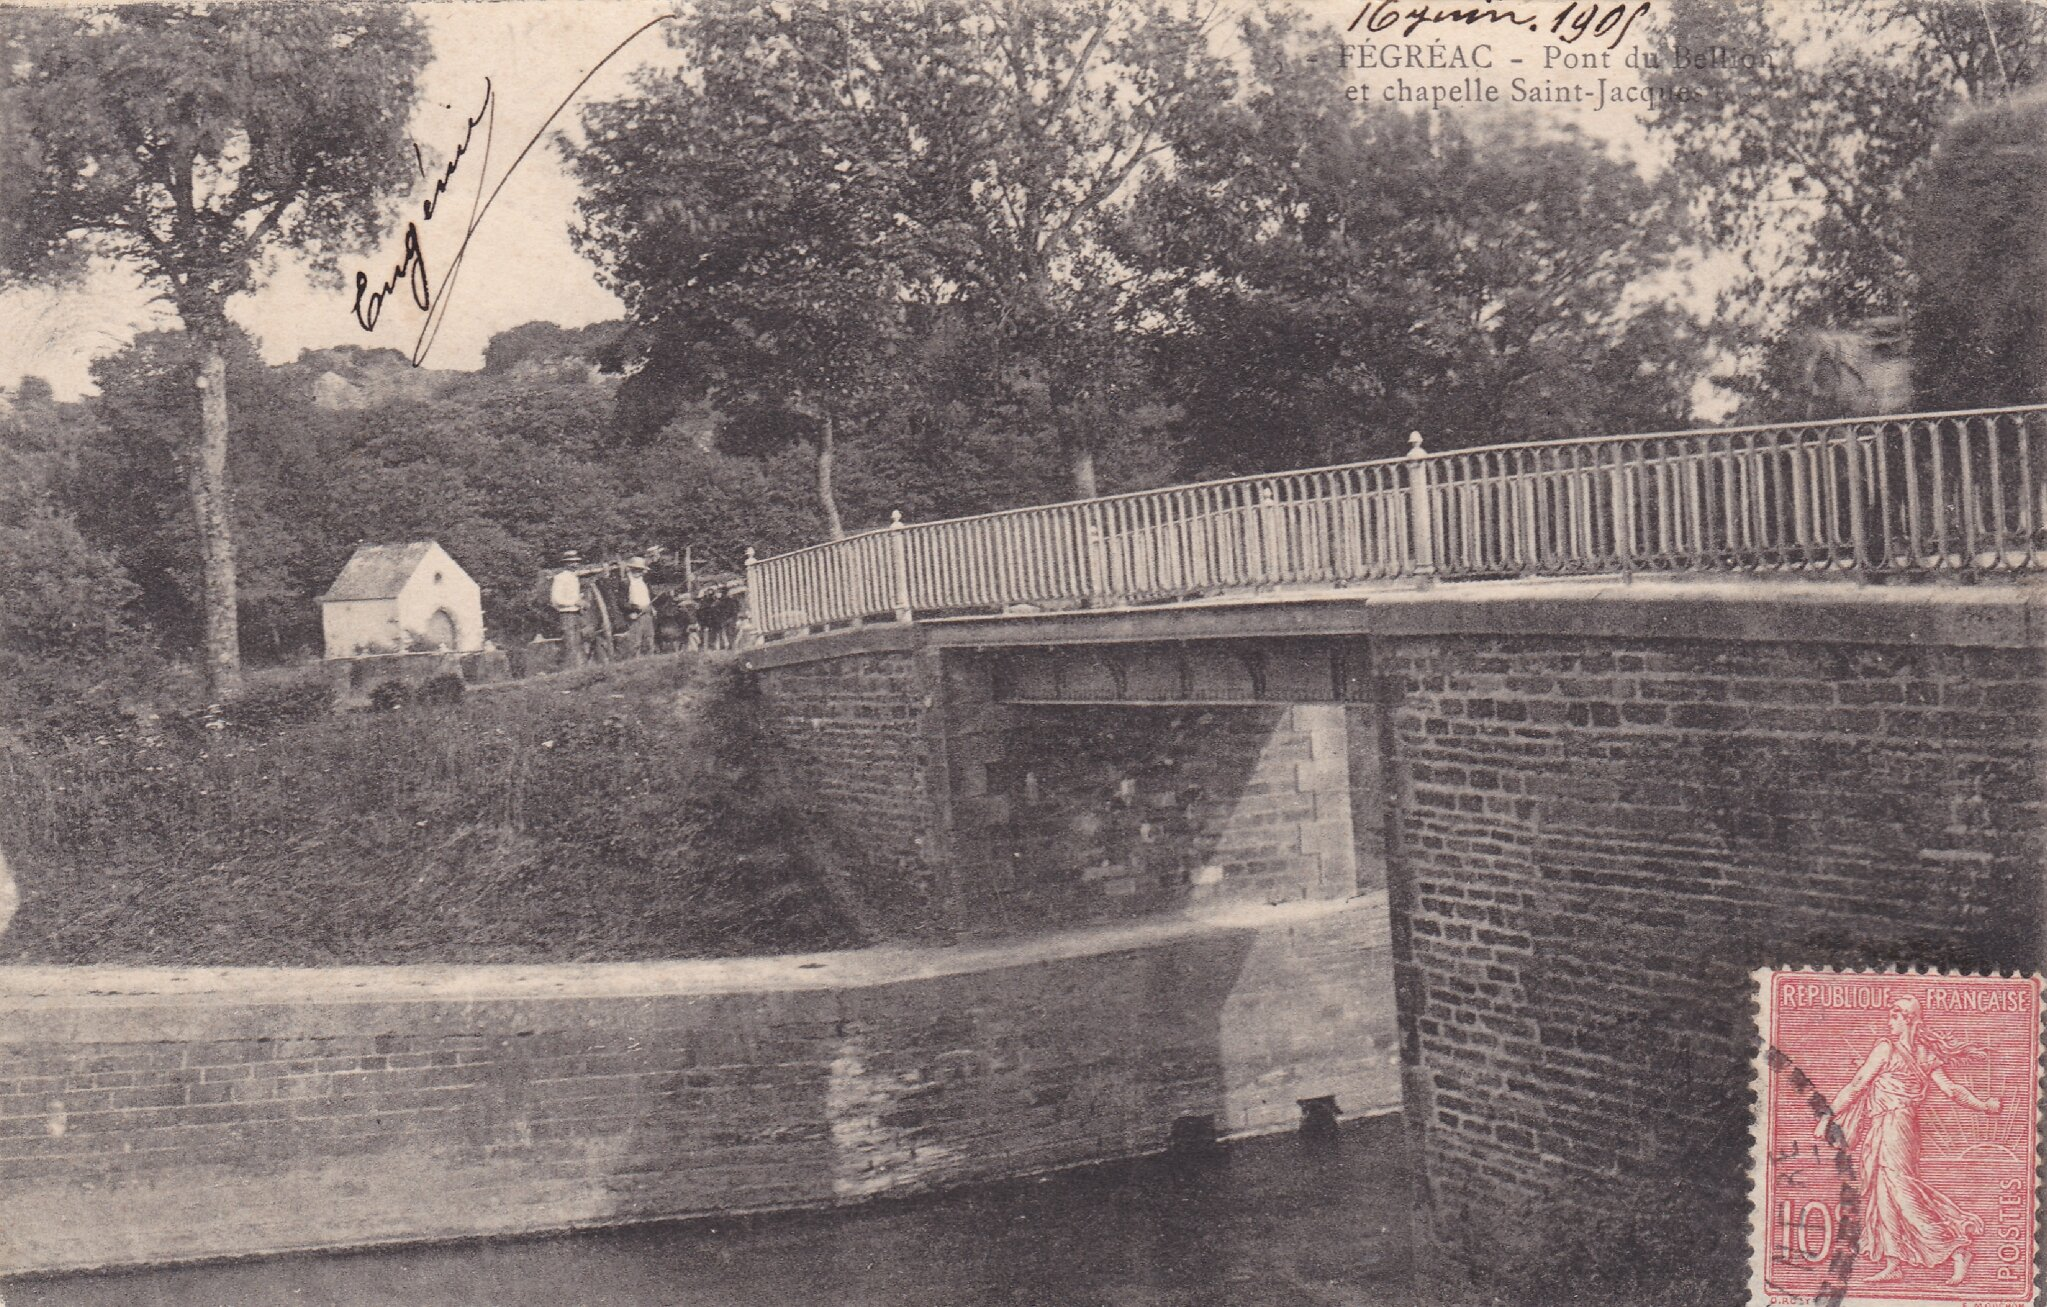 Fégréac Pont du Bellion et chapelle Saint-Jacques